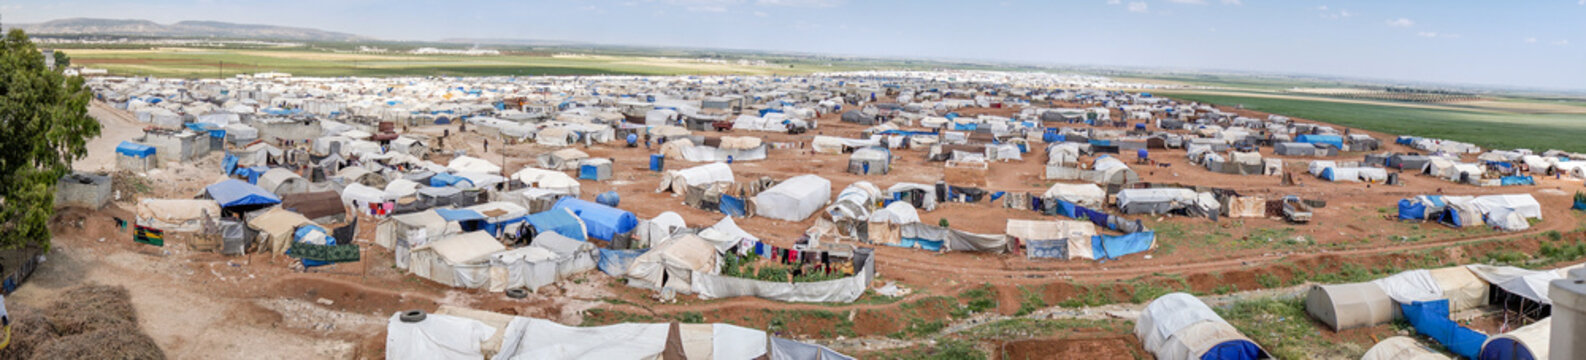 AZEZ, SYRIA – MAY 19: Refugee camp for syrian people on May 19, 2019 in Azez, Syria. In the civil war that began in Syria on 2011, 12 million people were displaced.